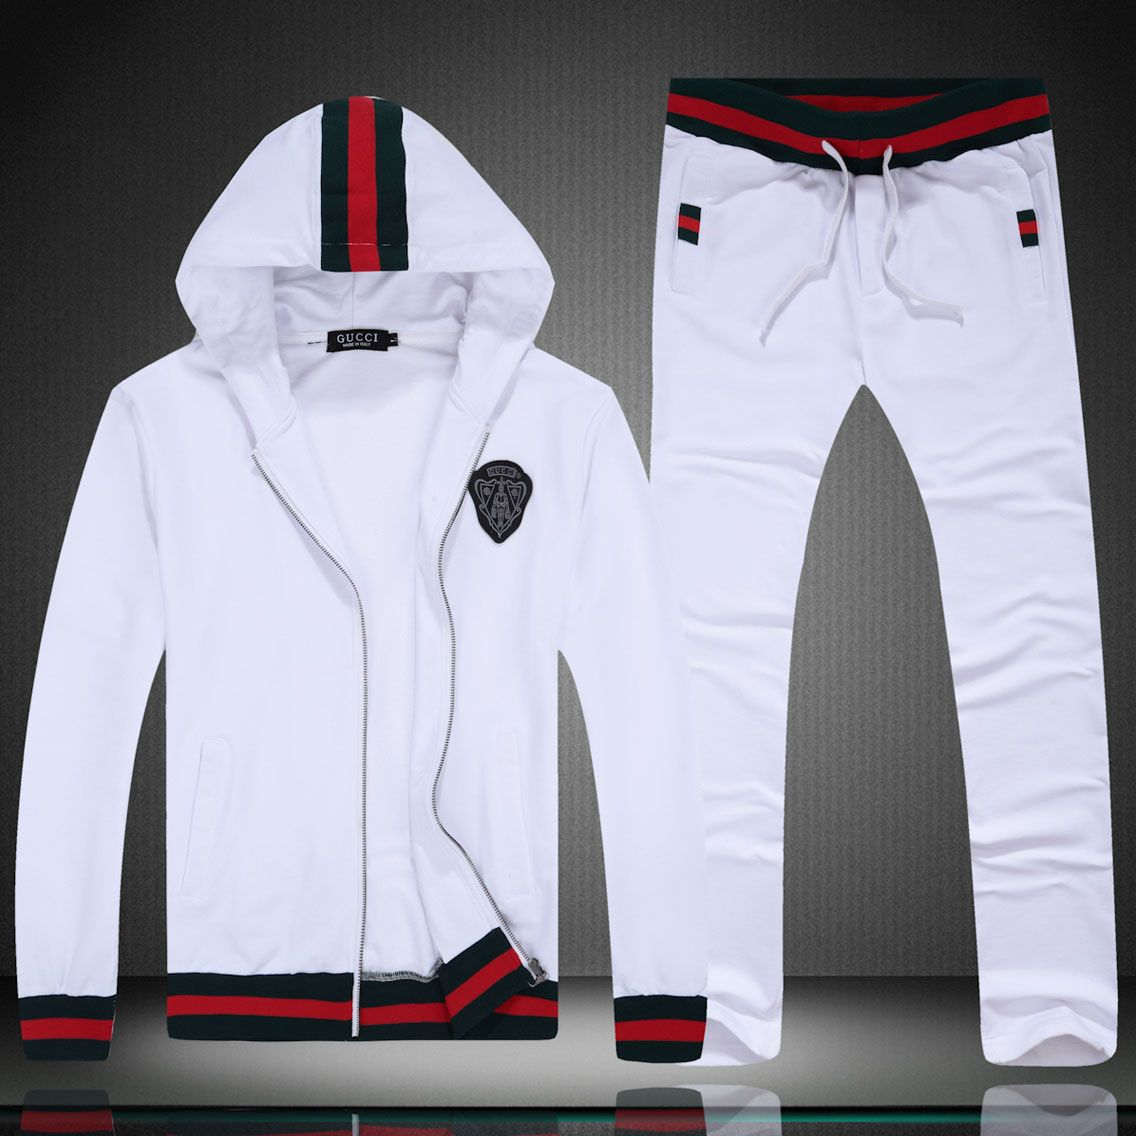 ddc52f932f0f Replica cheap outlet Gucci Tracksuits for MEN  199328